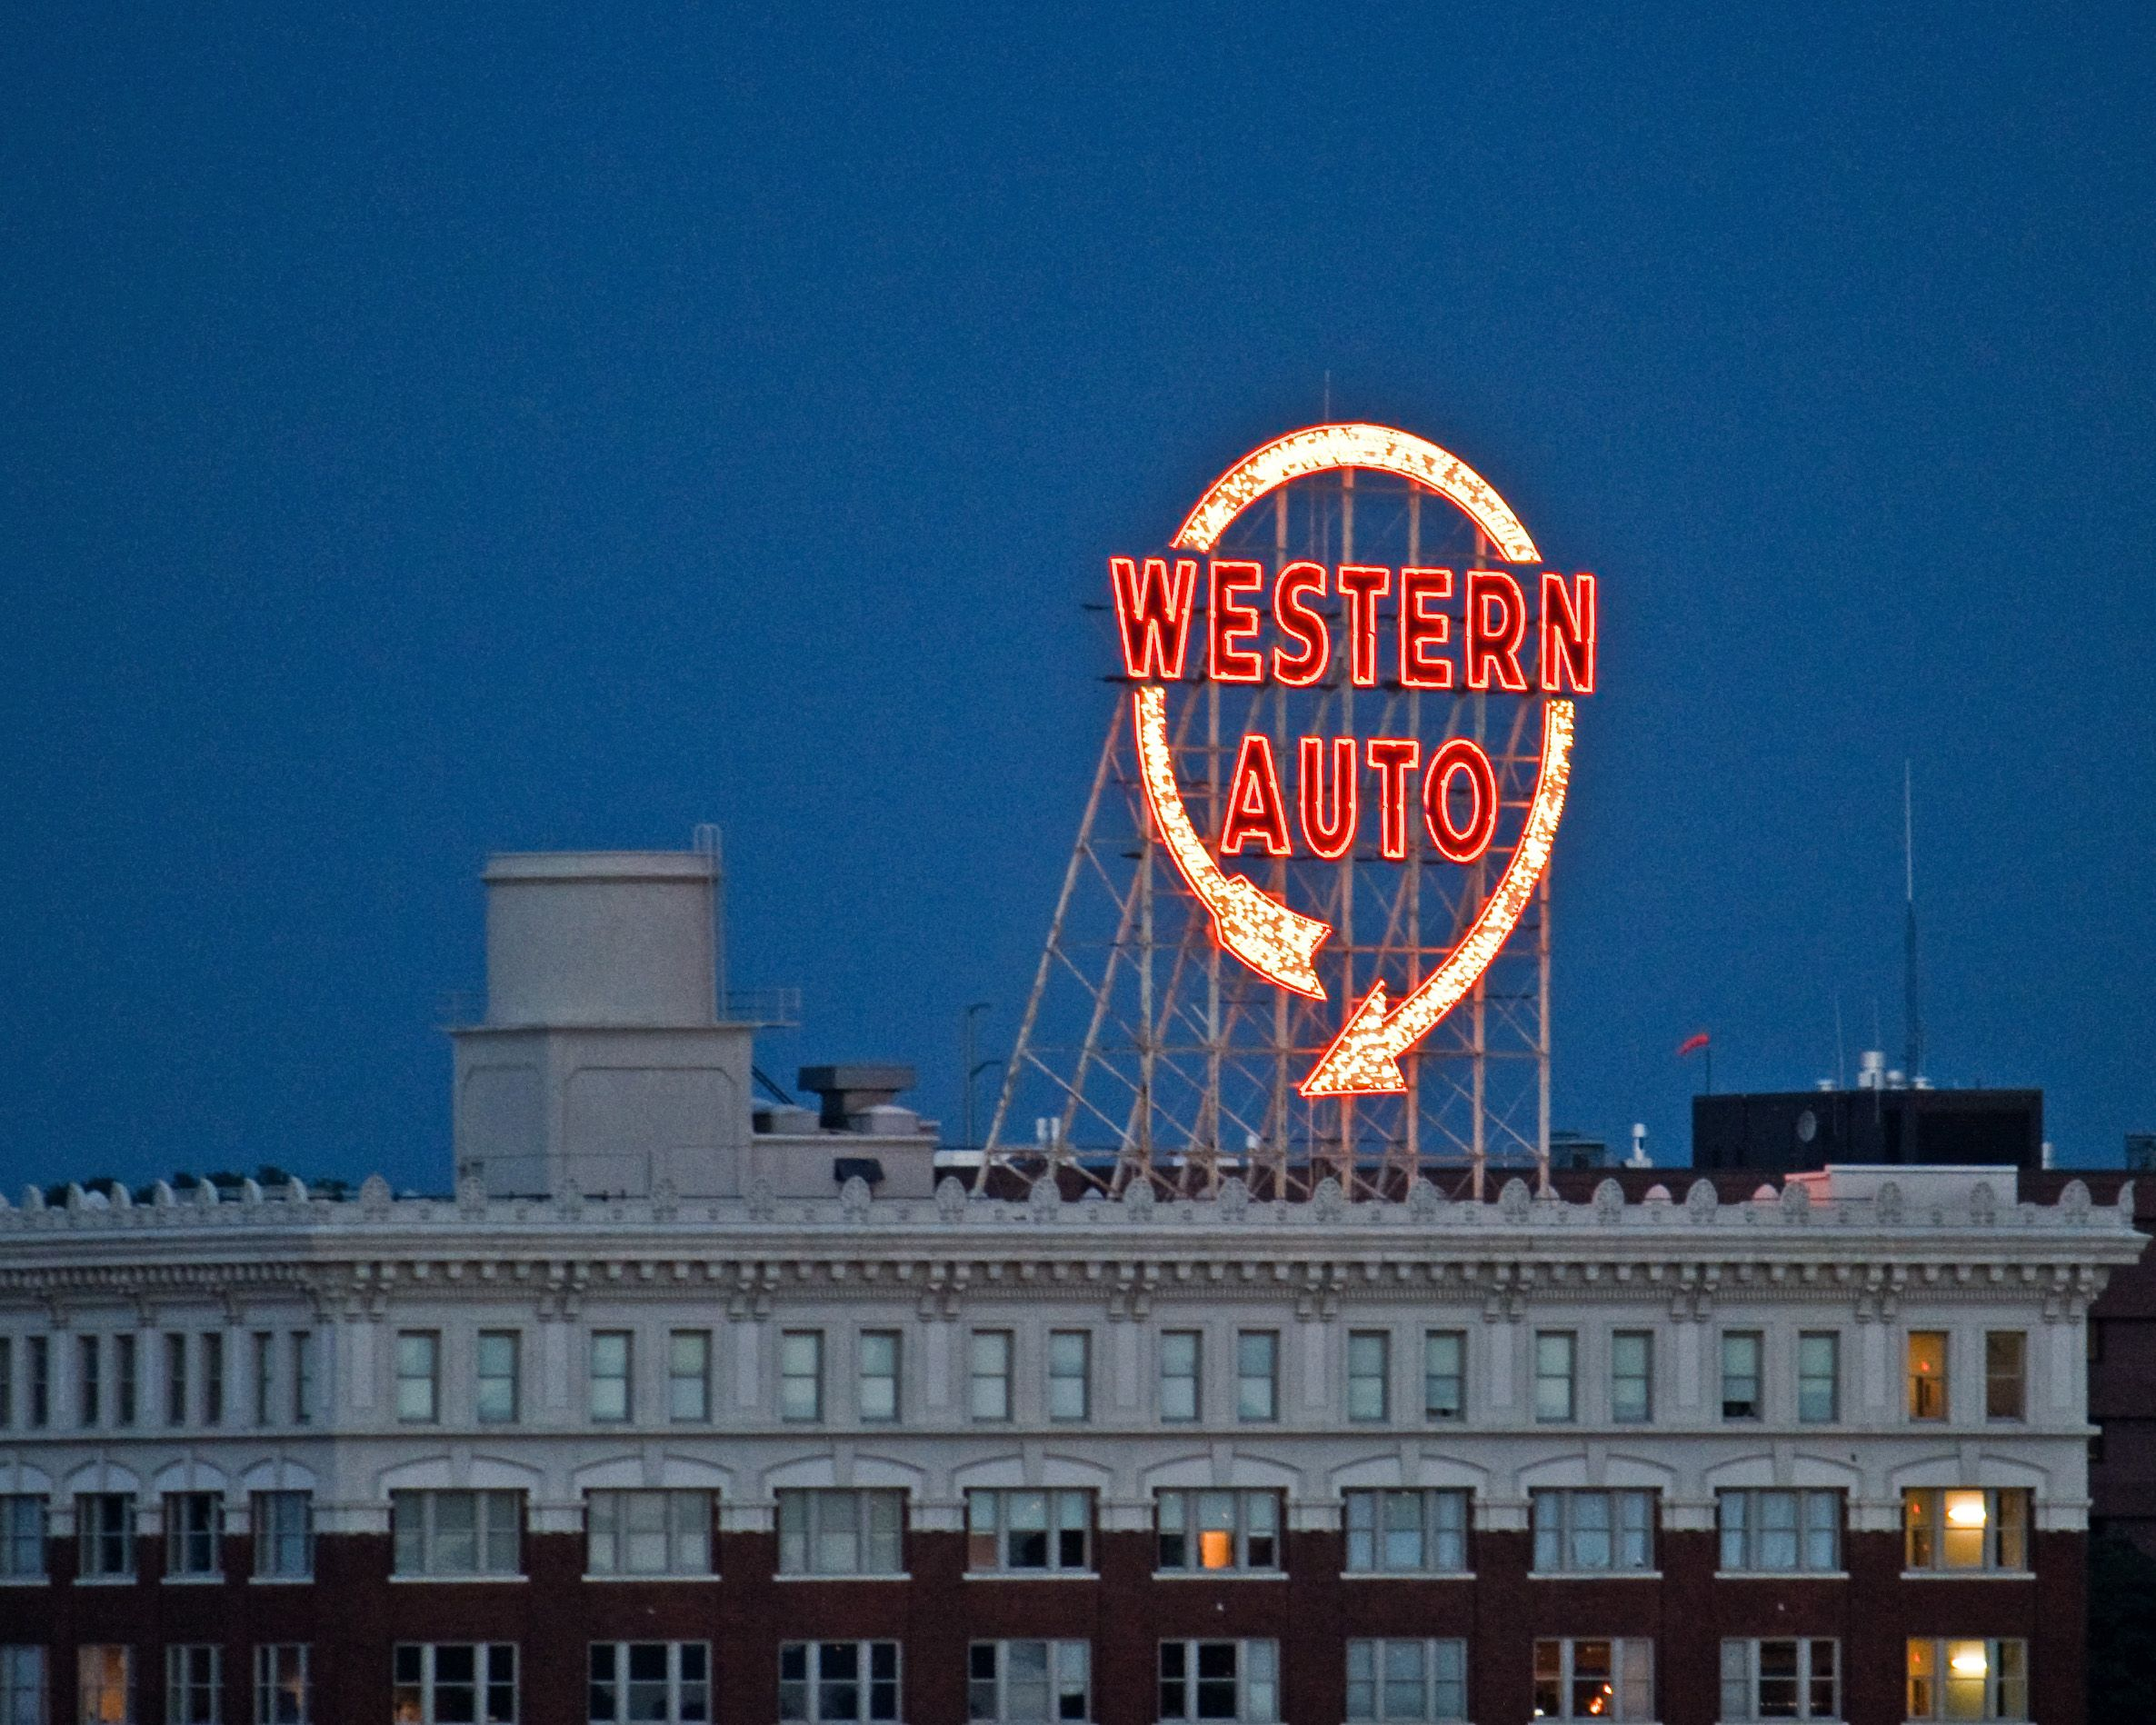 A Kansas City Icon The Western Auto Sign My Photos Arround Kc